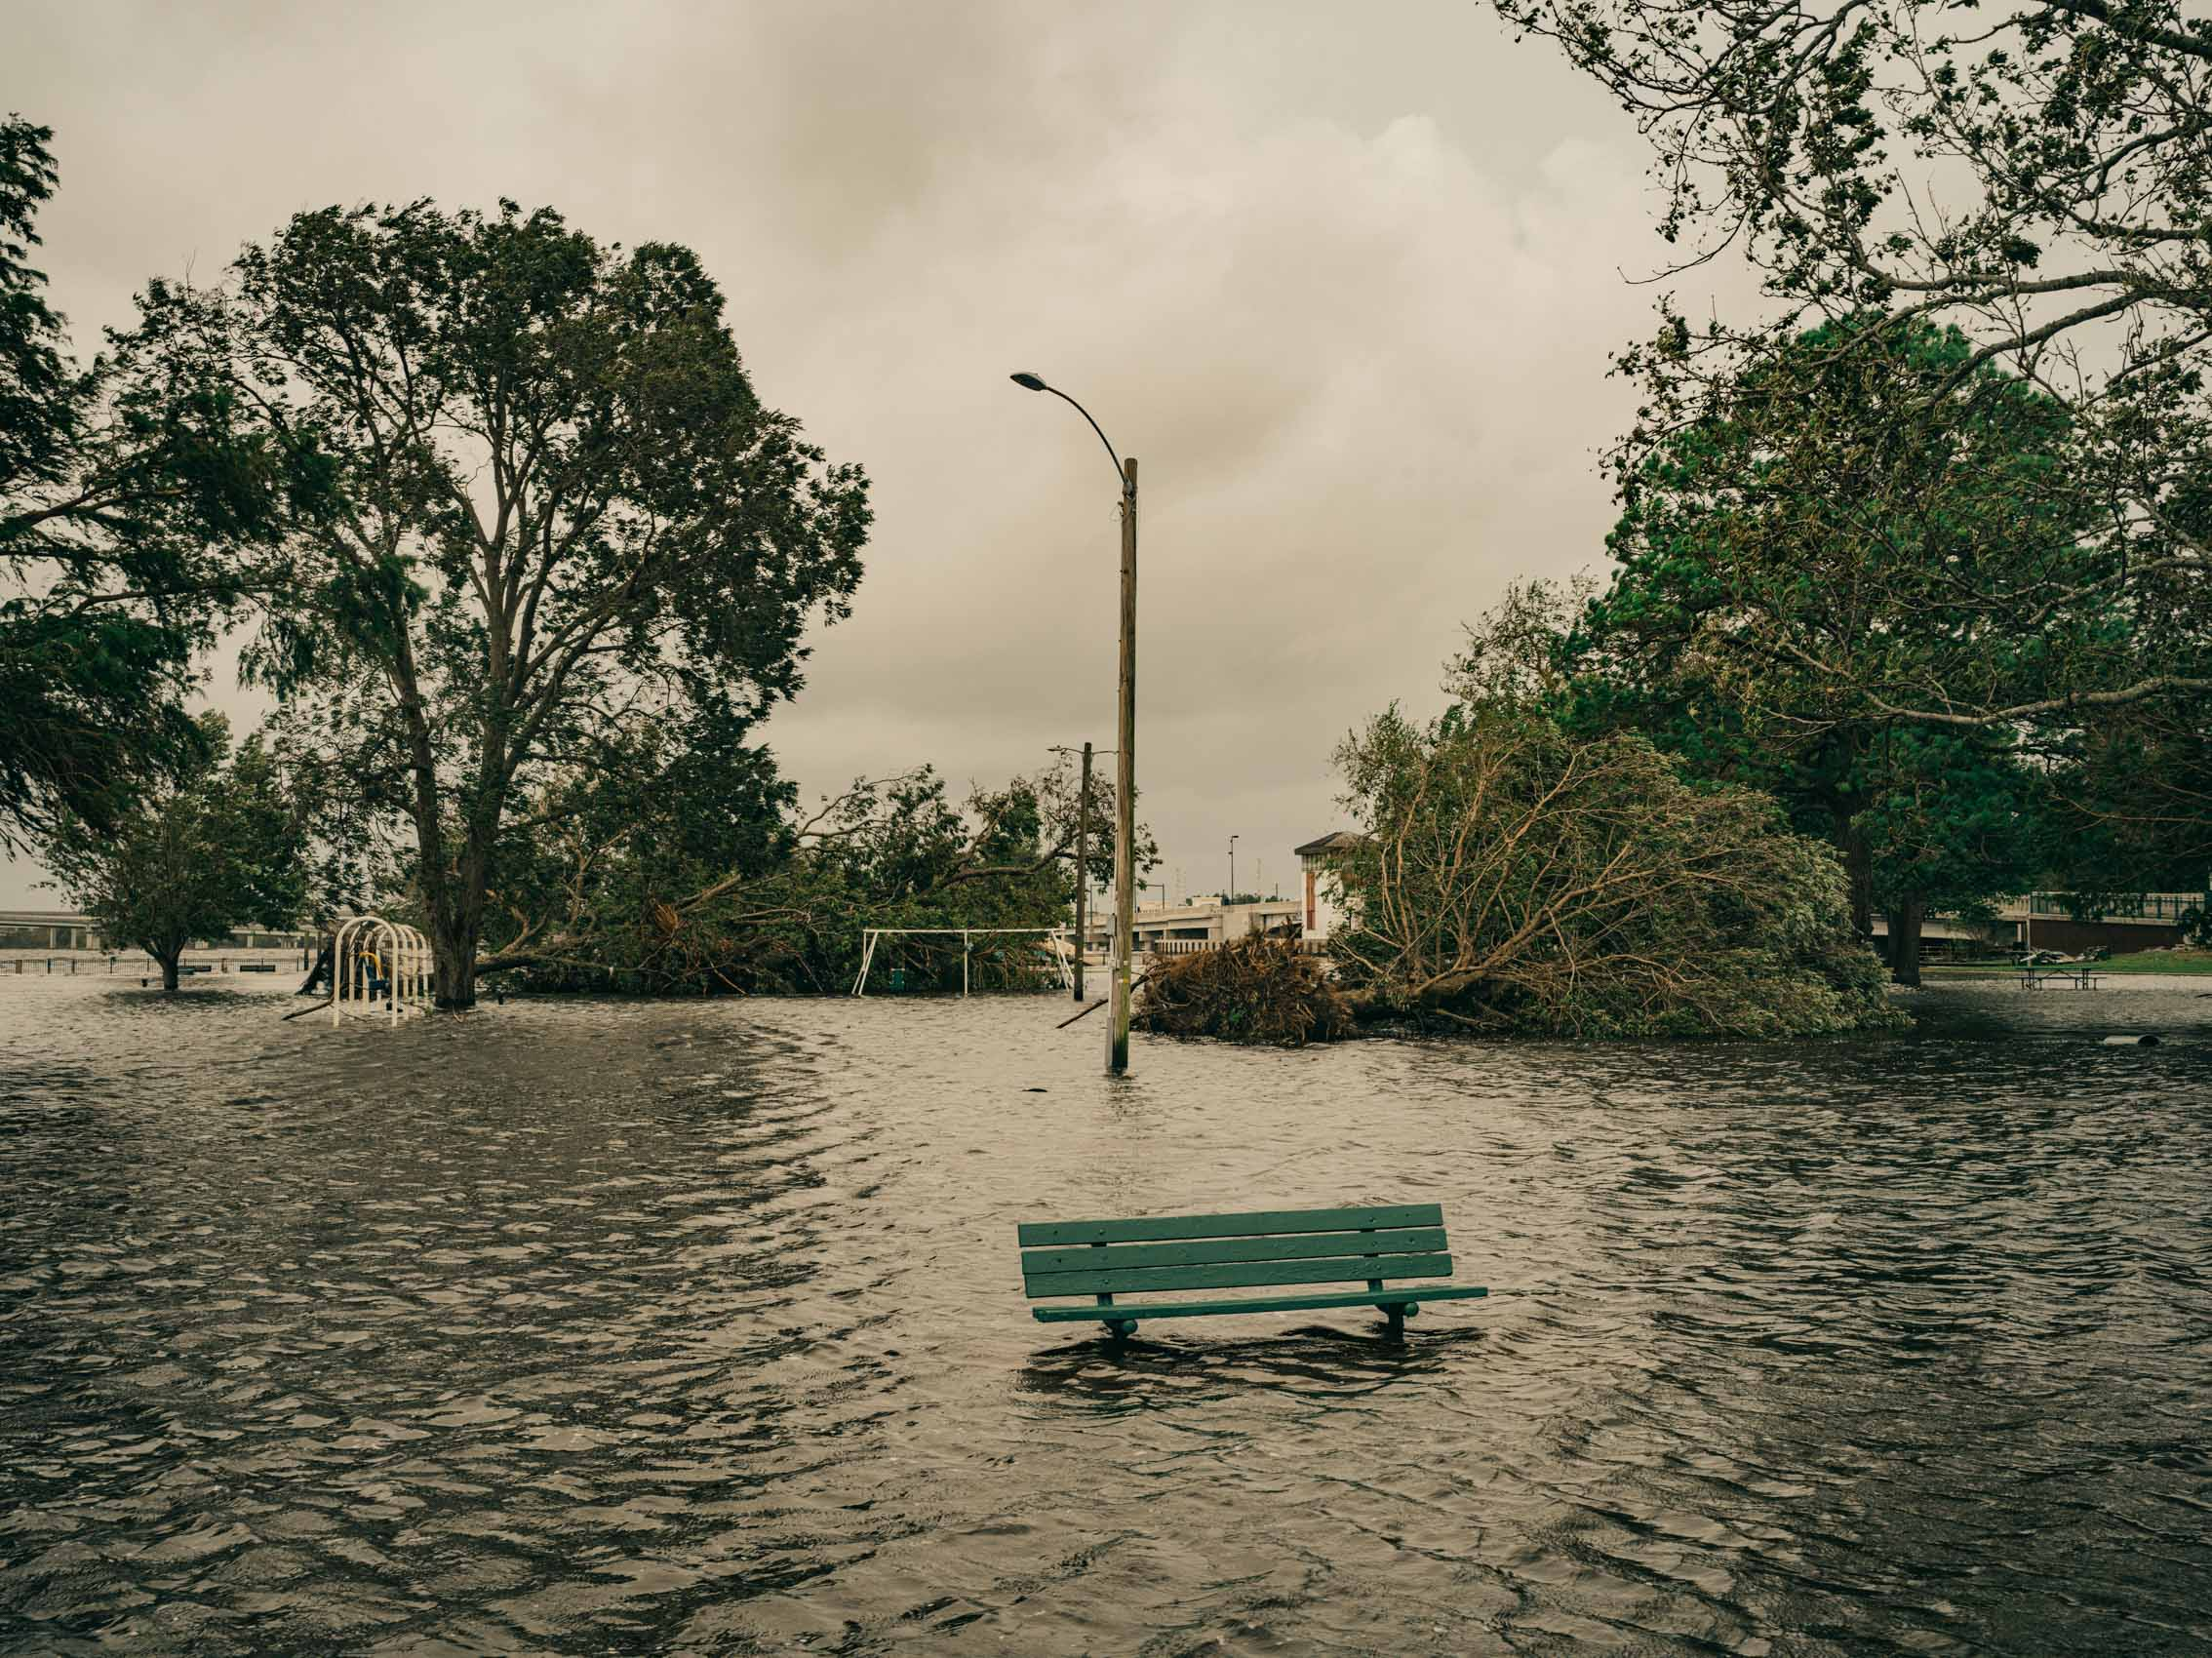 park and bench underwater in new bern after hurricane